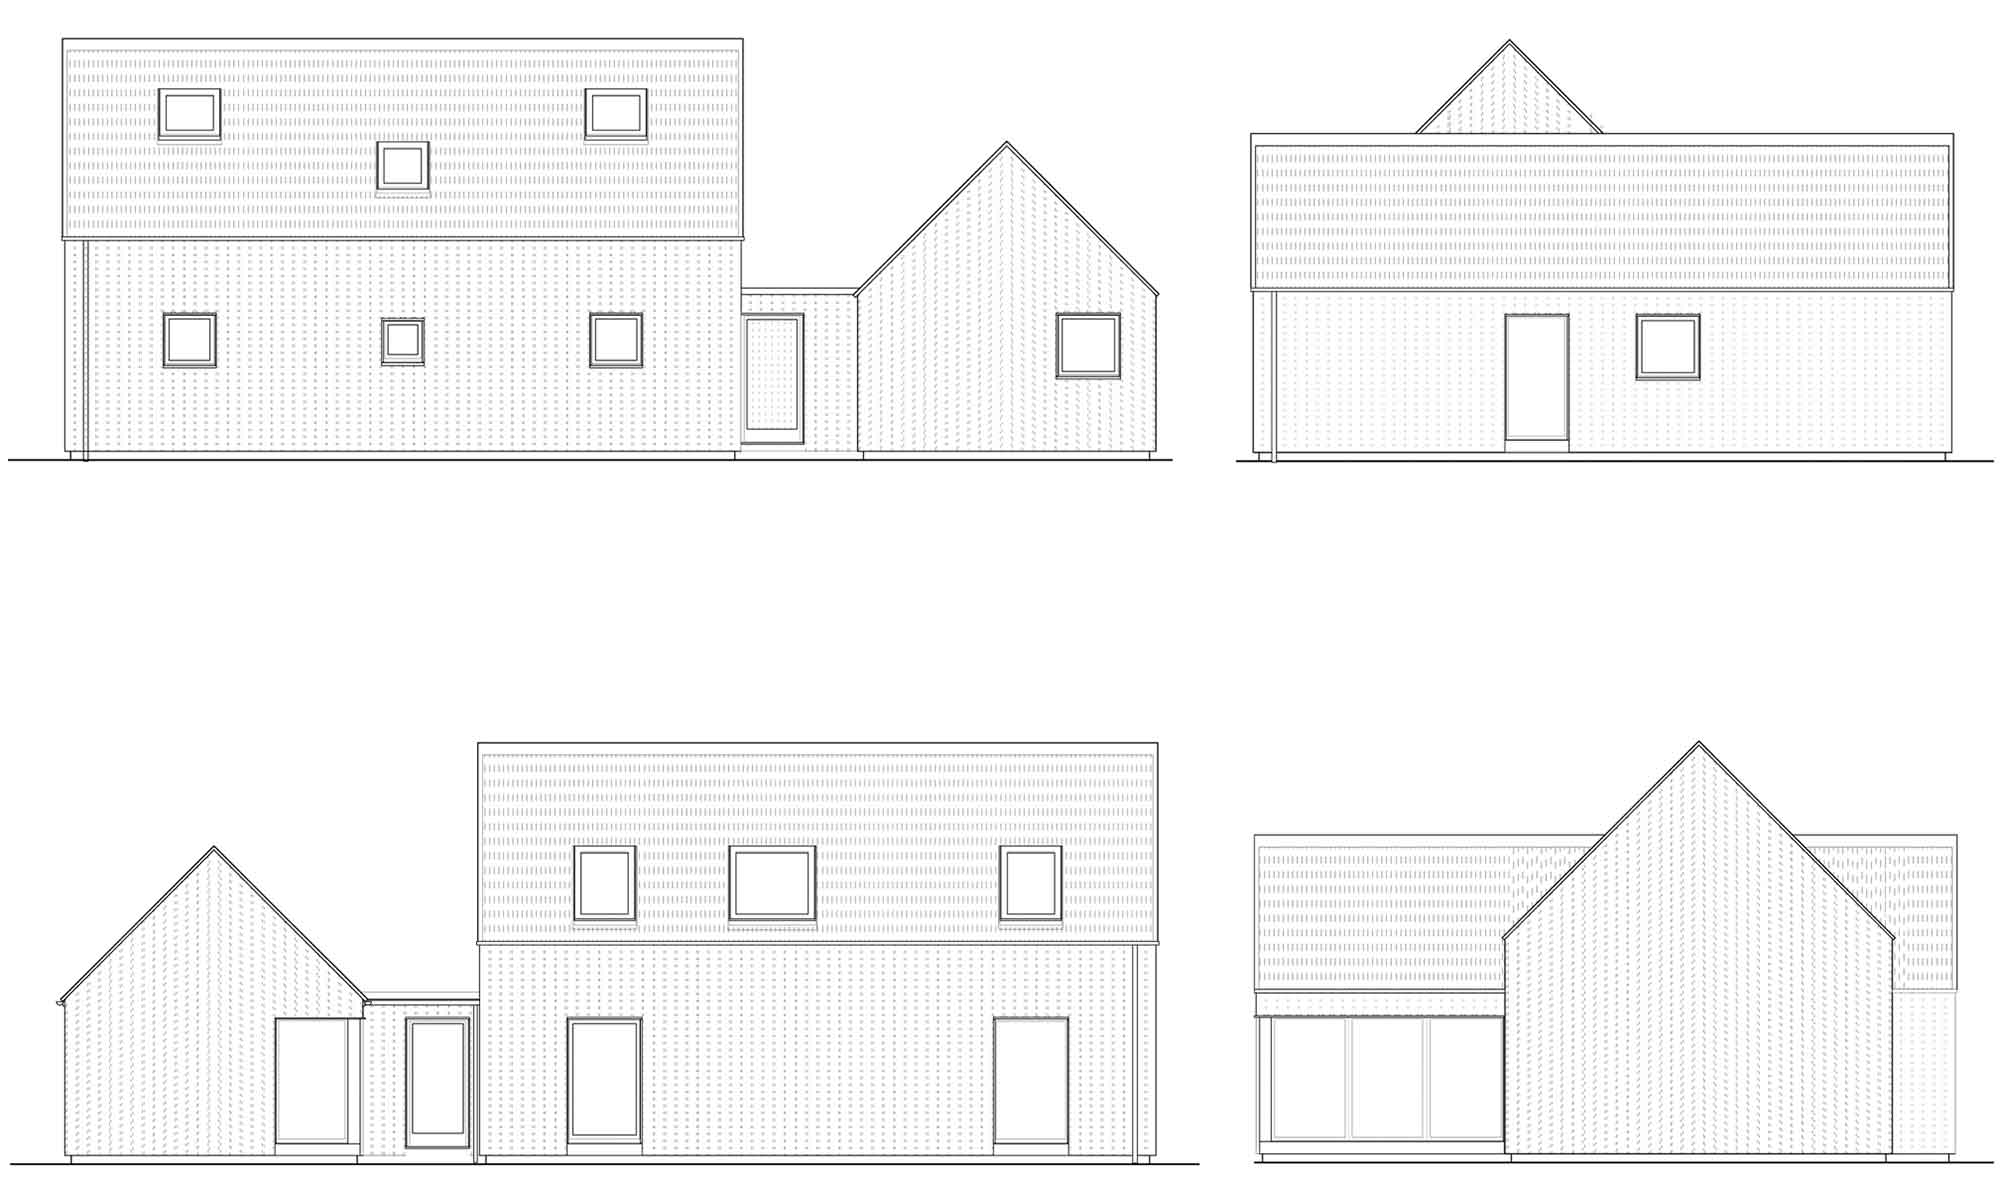 R4 Elevations Rural House Designs